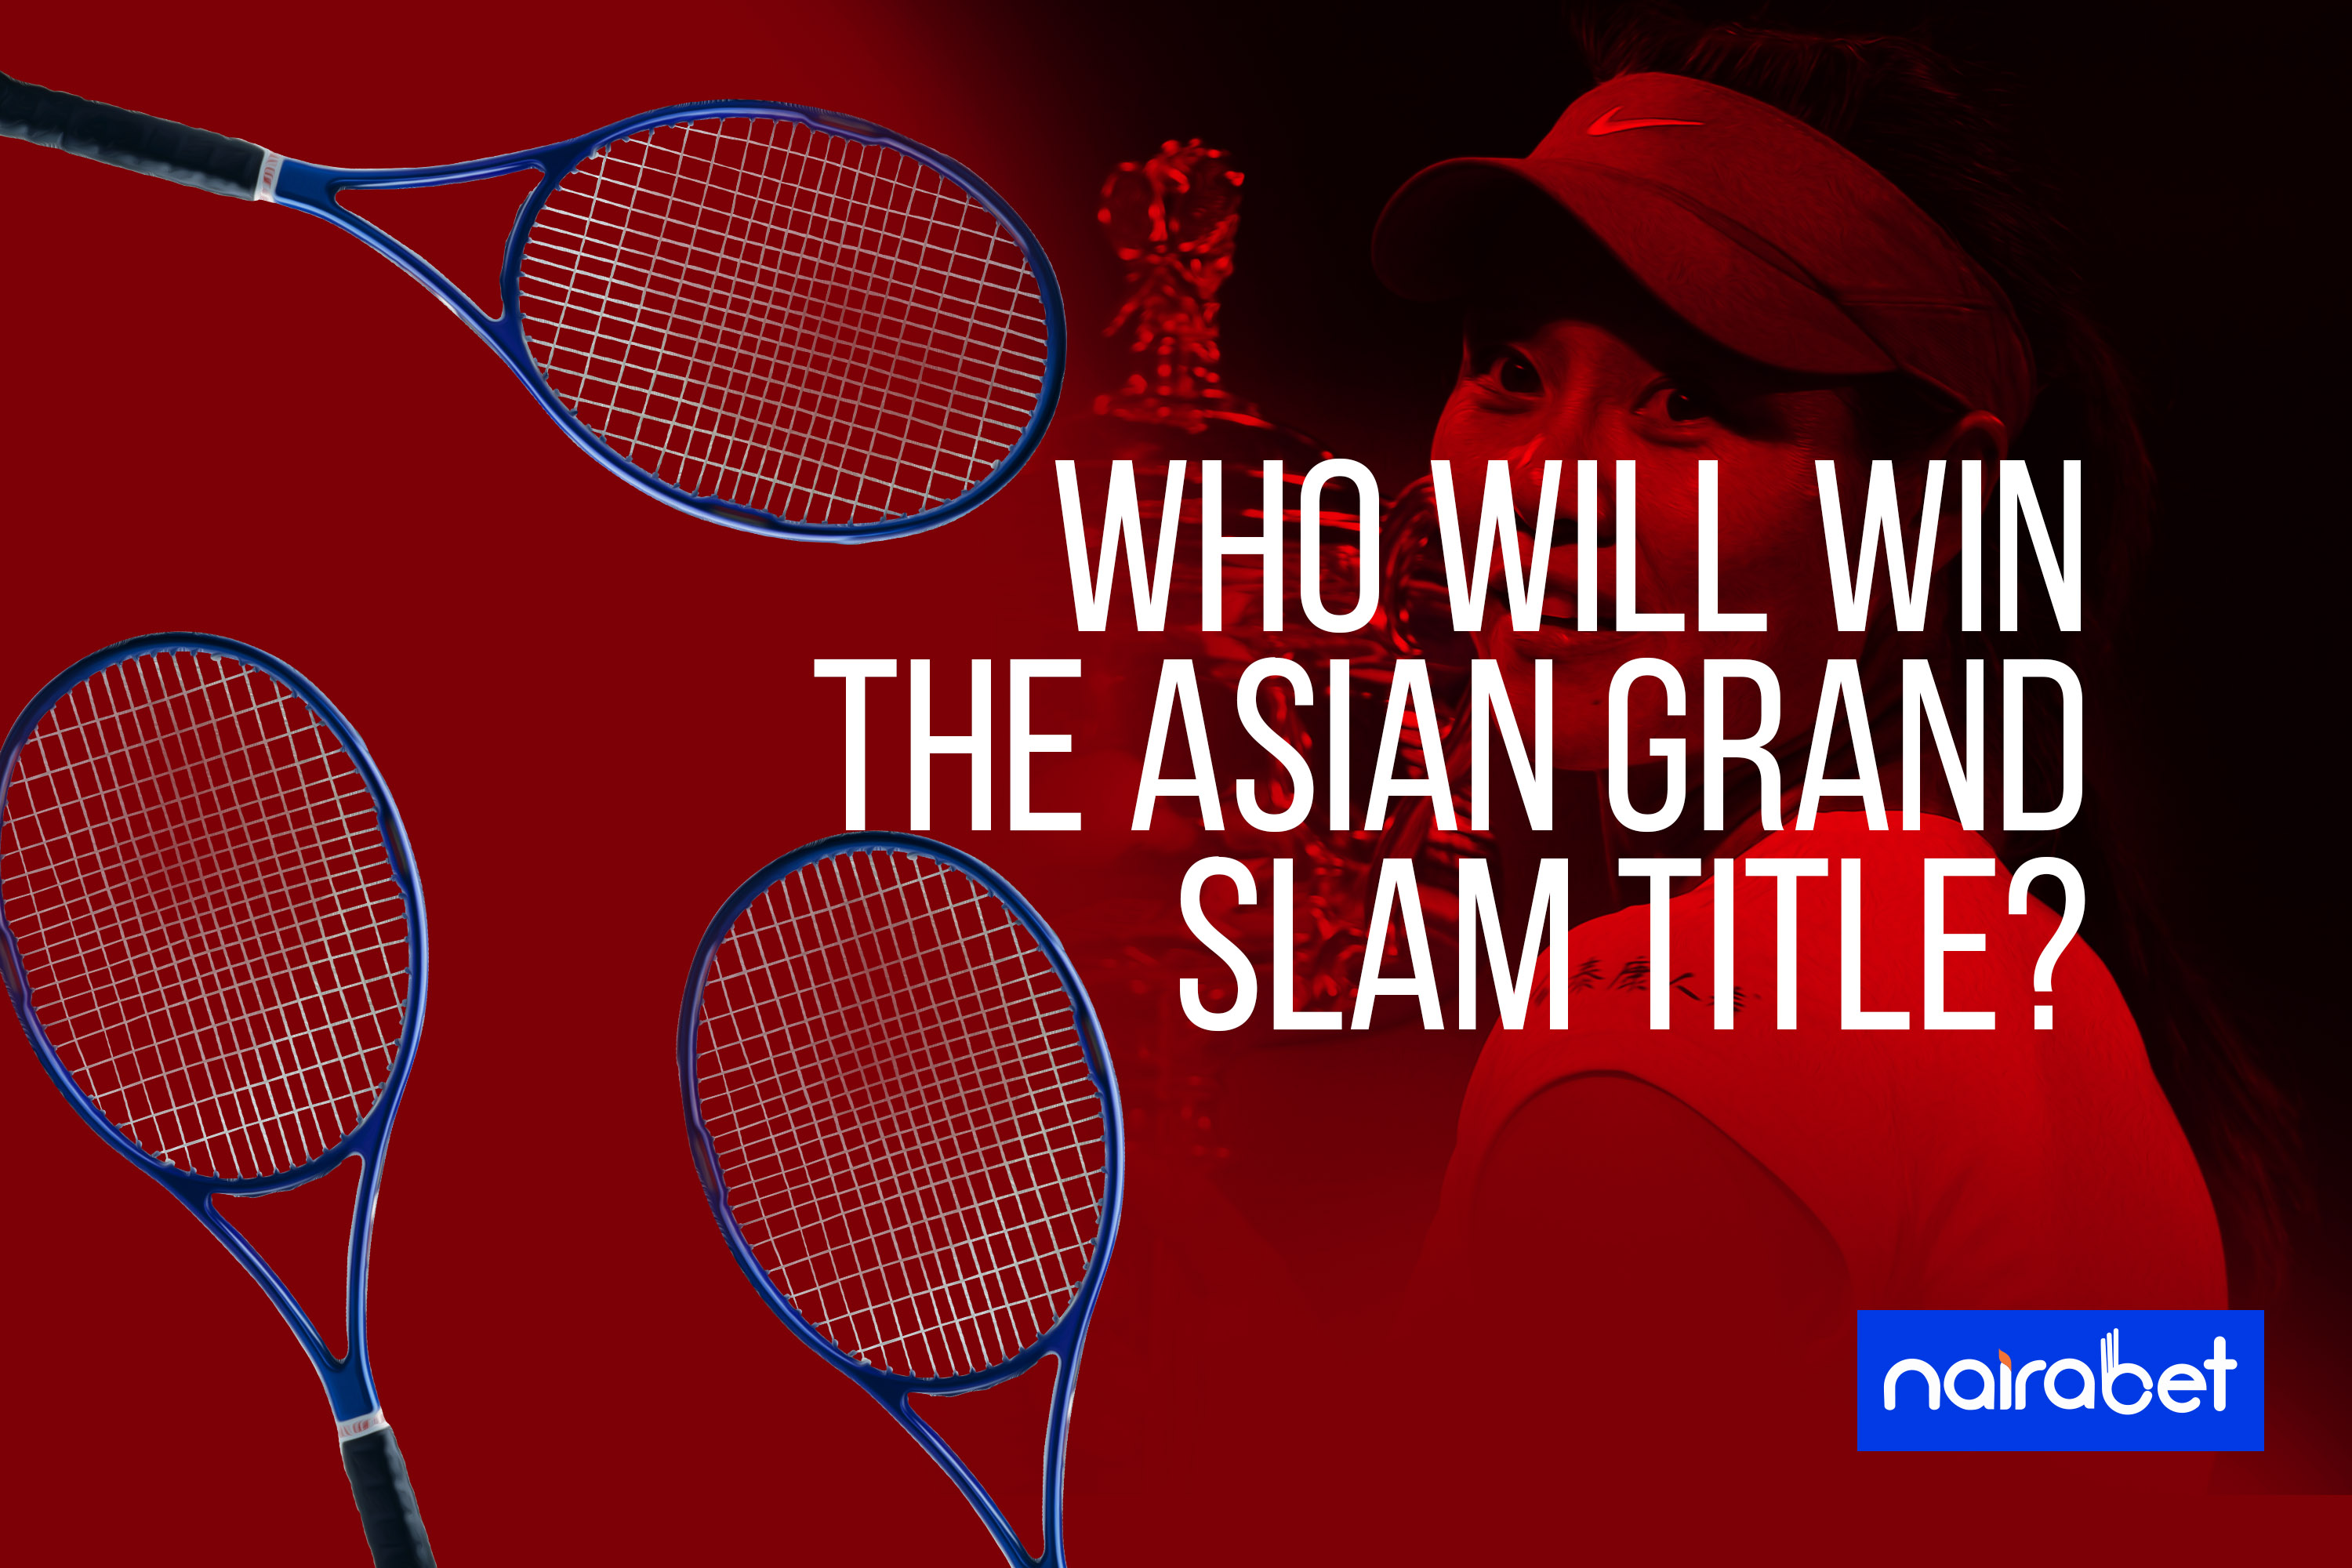 win Asian grand slam